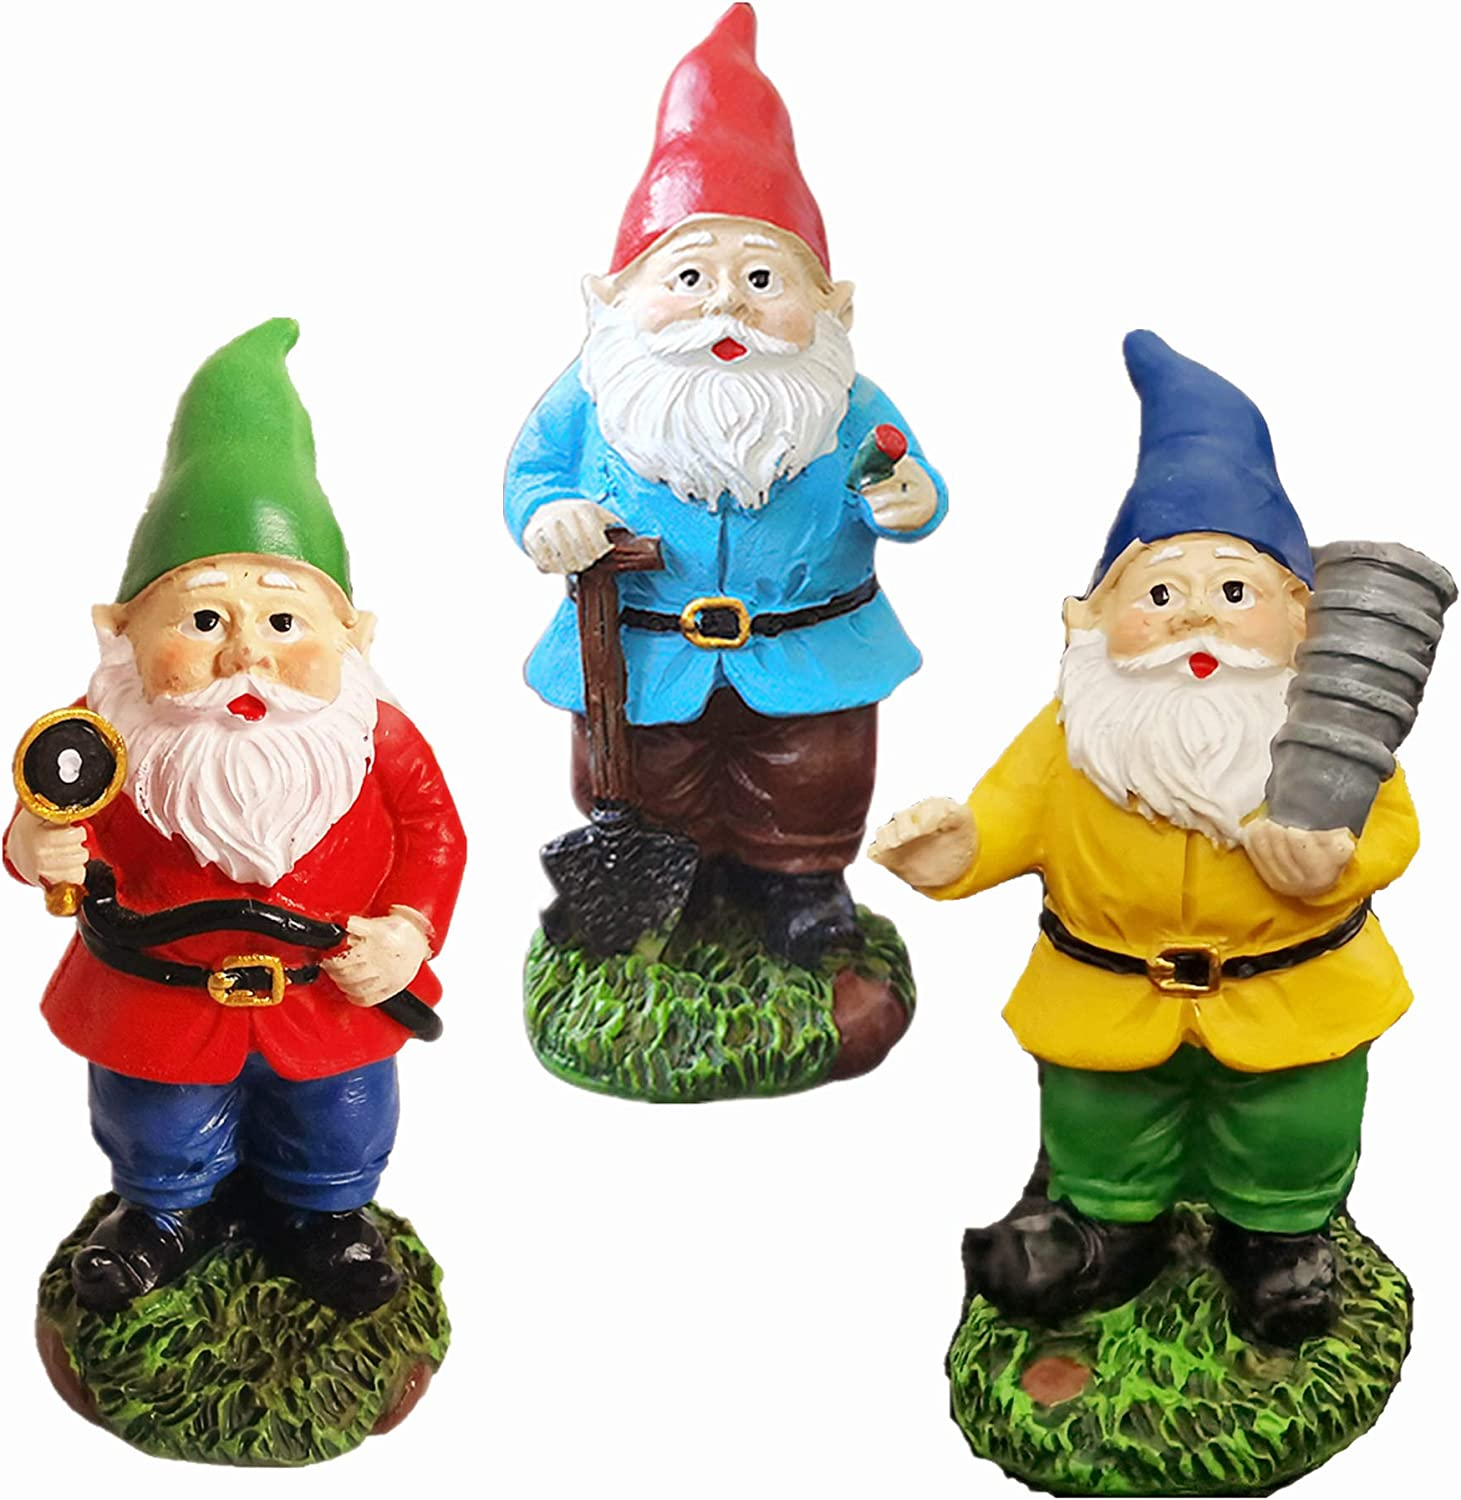 JIUMO Miniature Gnome Figurines 3 Sets Small Gnomes Sets for Fairy Gardens Gifts Fairy Garden Gnomes